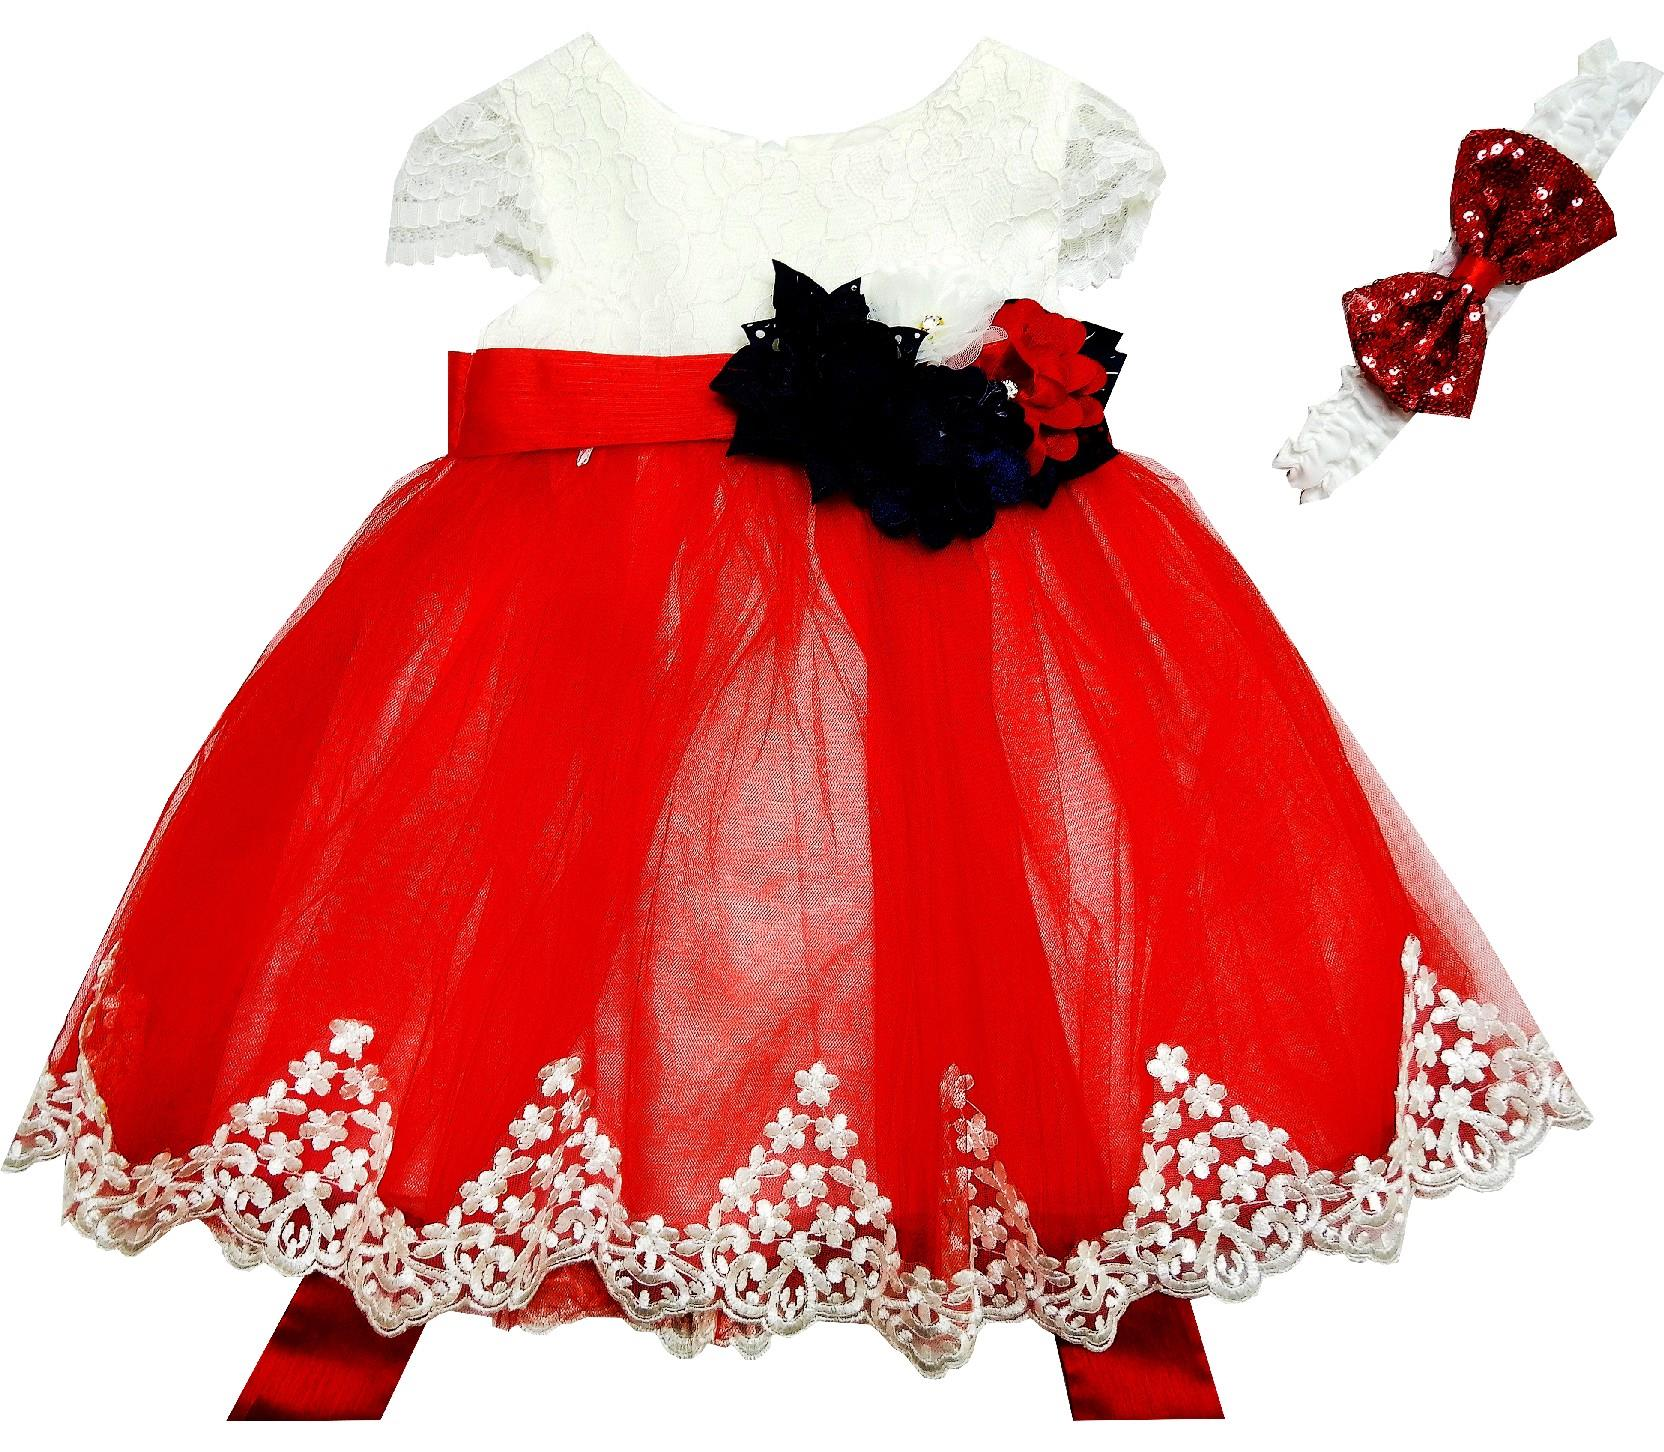 040 Wholesale lace fabric tulle dress with headband for girl (1-2-3-4 age)